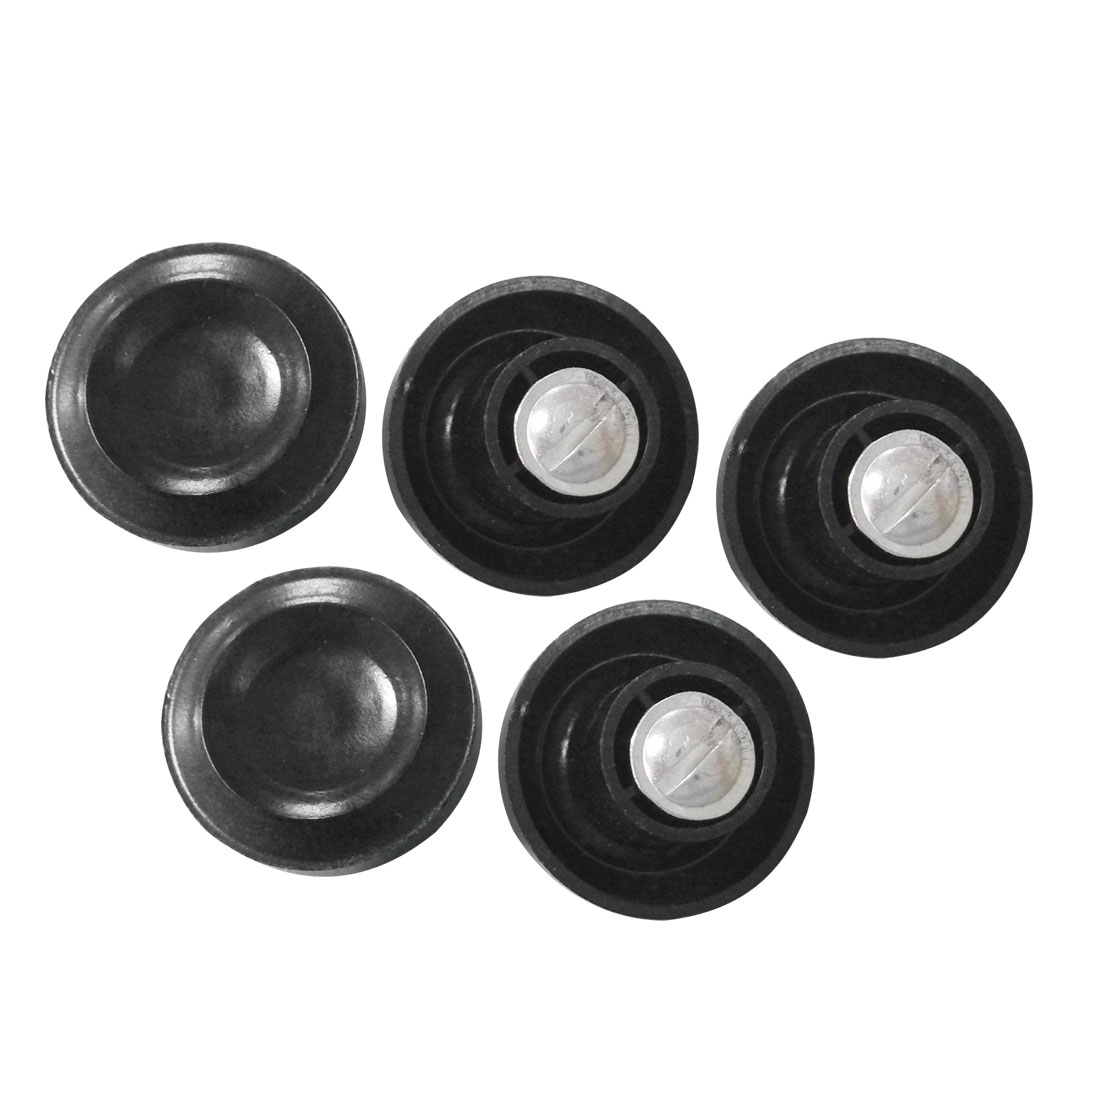 "5 x 1"" Black Plastic Cooking Frying Pan Lid Cover Knob Handle"